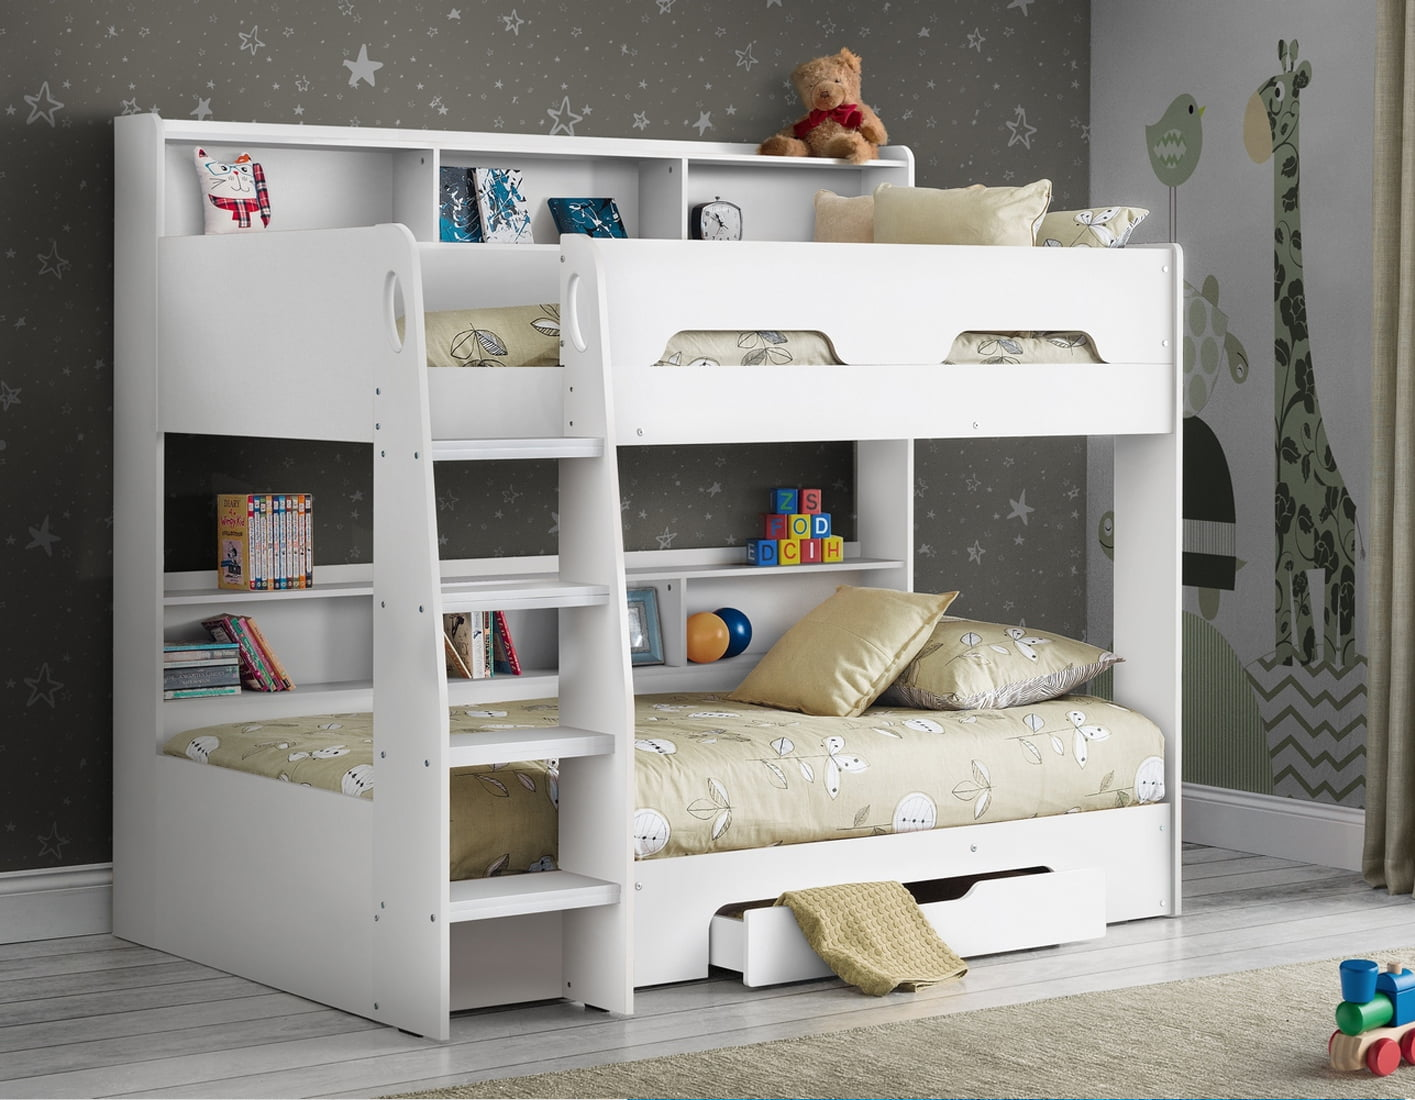 Orion Bunk Bed in White Bunk Bed with Shelves  495 on